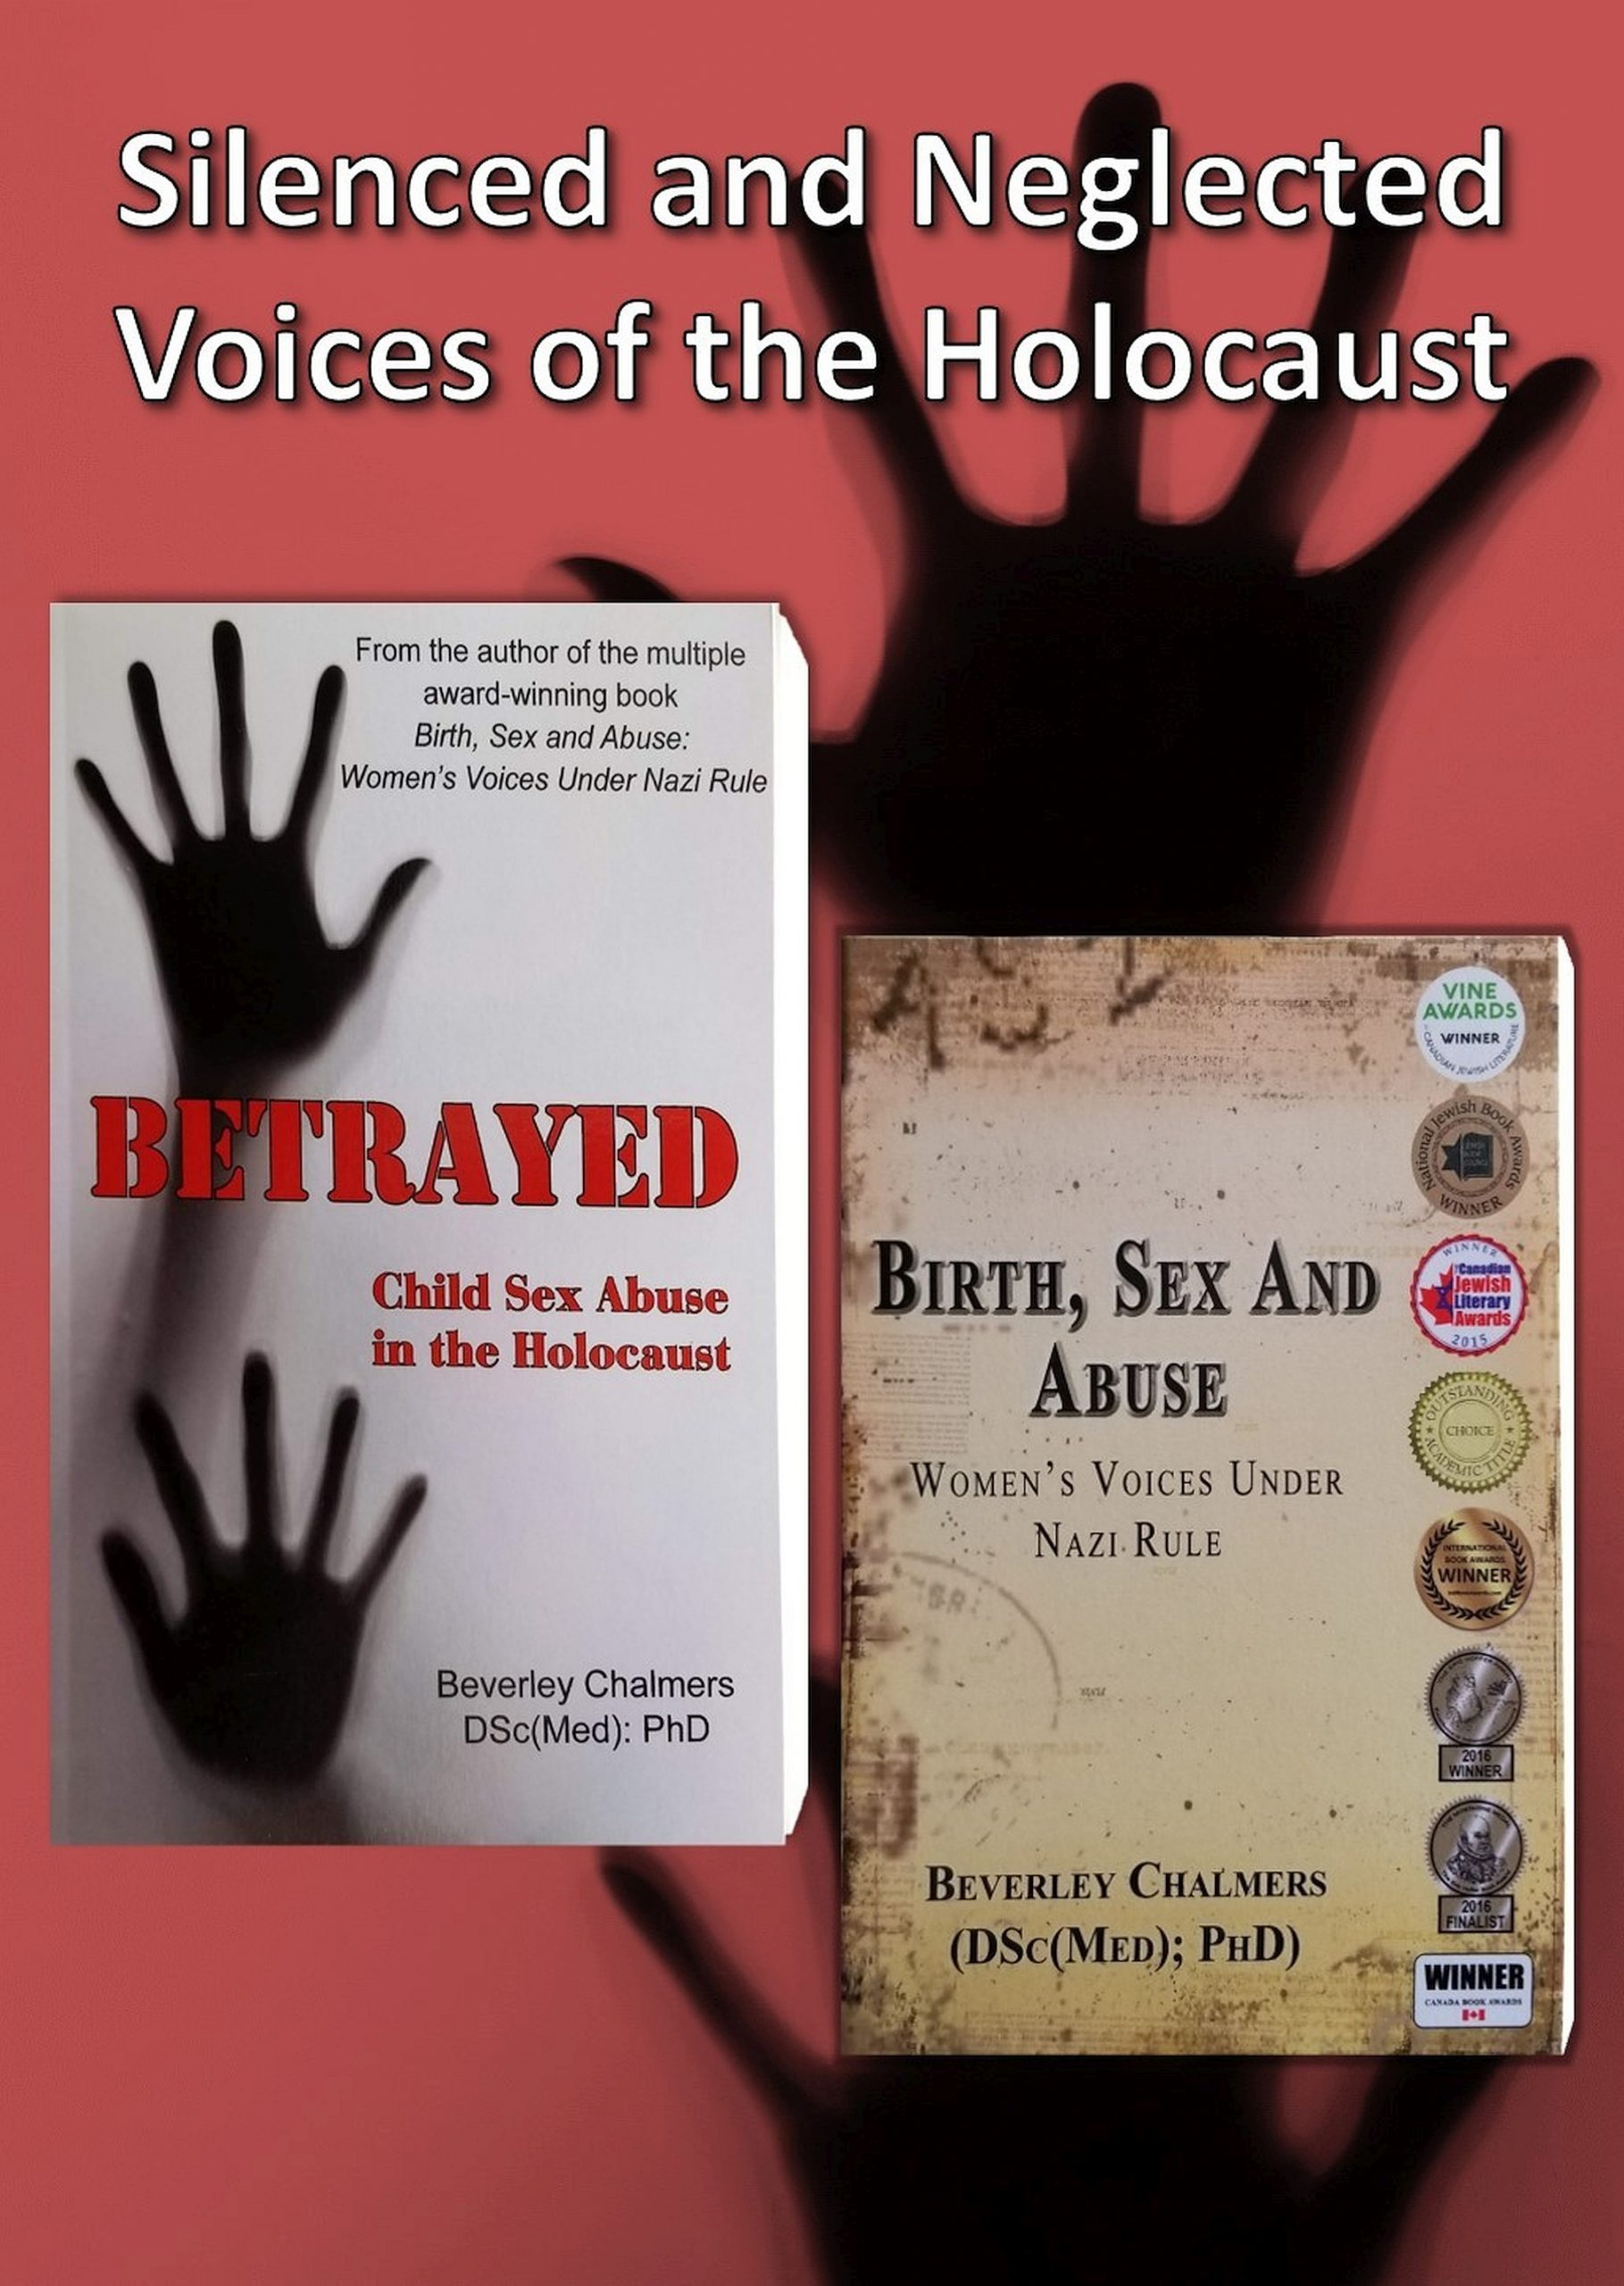 Two multi-award winning books about silenced and neglected victims of the Holocaust by Beverley Chalmers (DSc(Med);PhD) (www.bevchalmers.com)